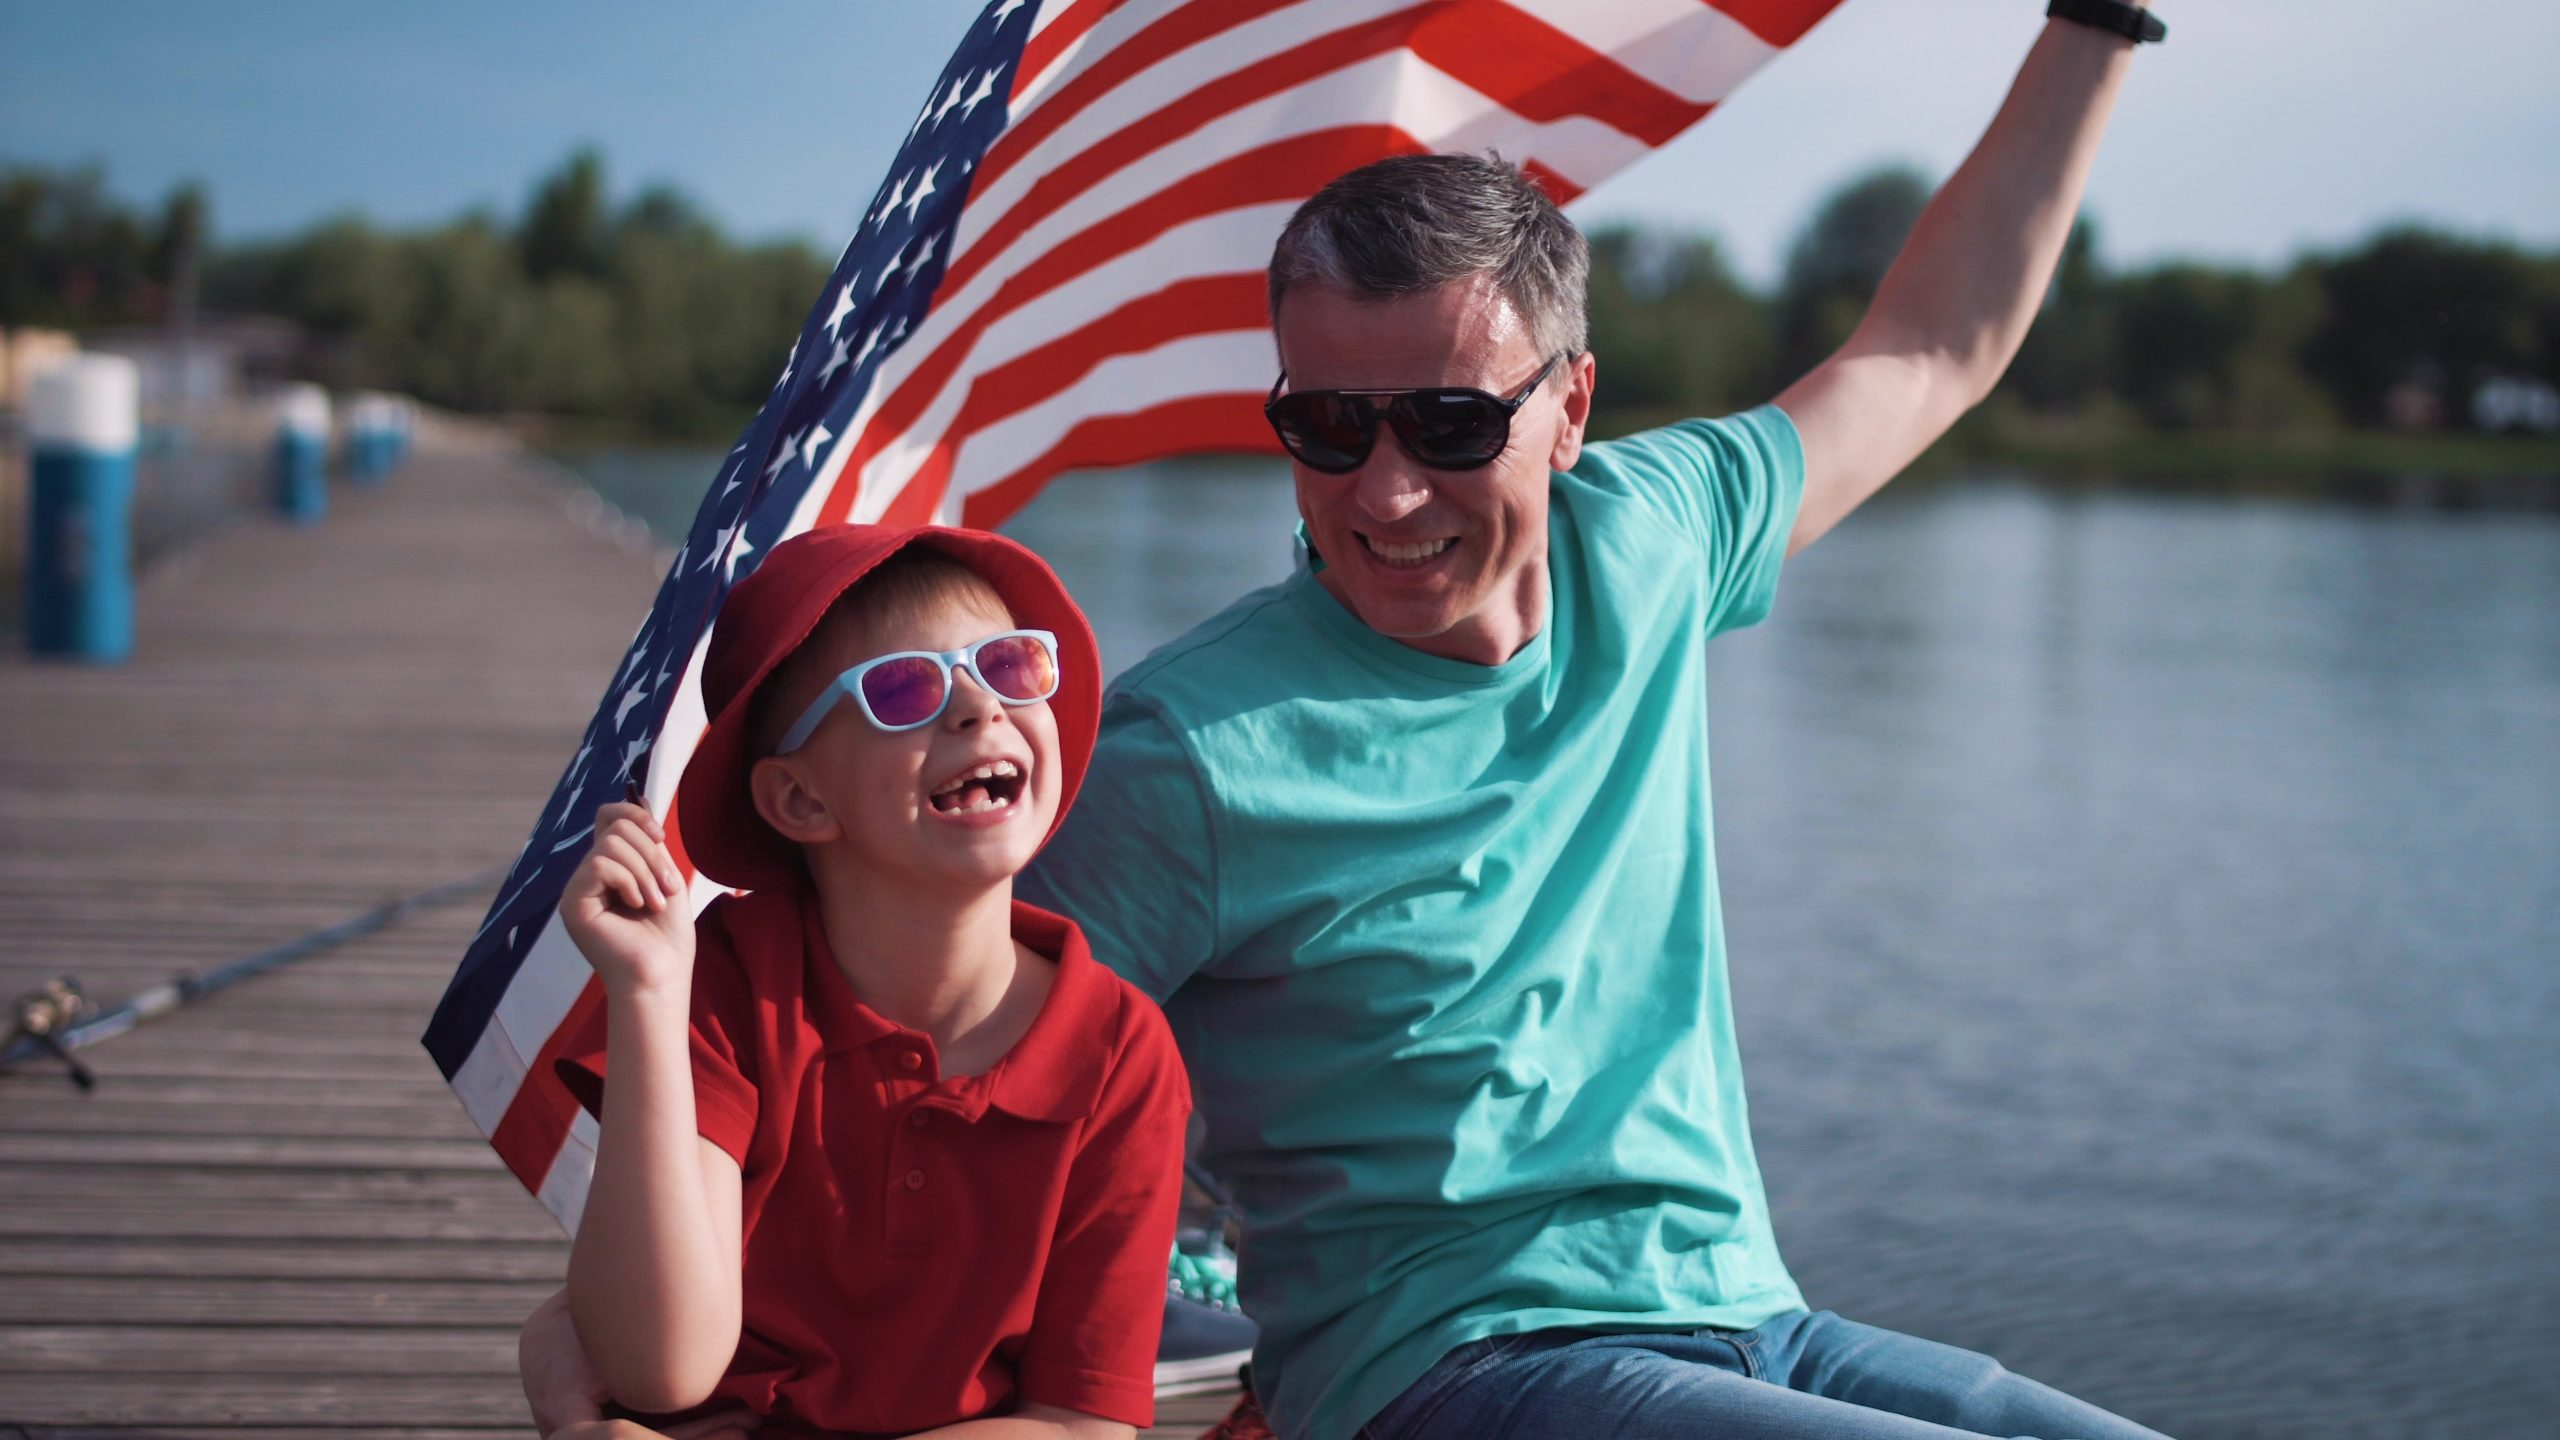 Father & Son Enjoying the Fourth of July